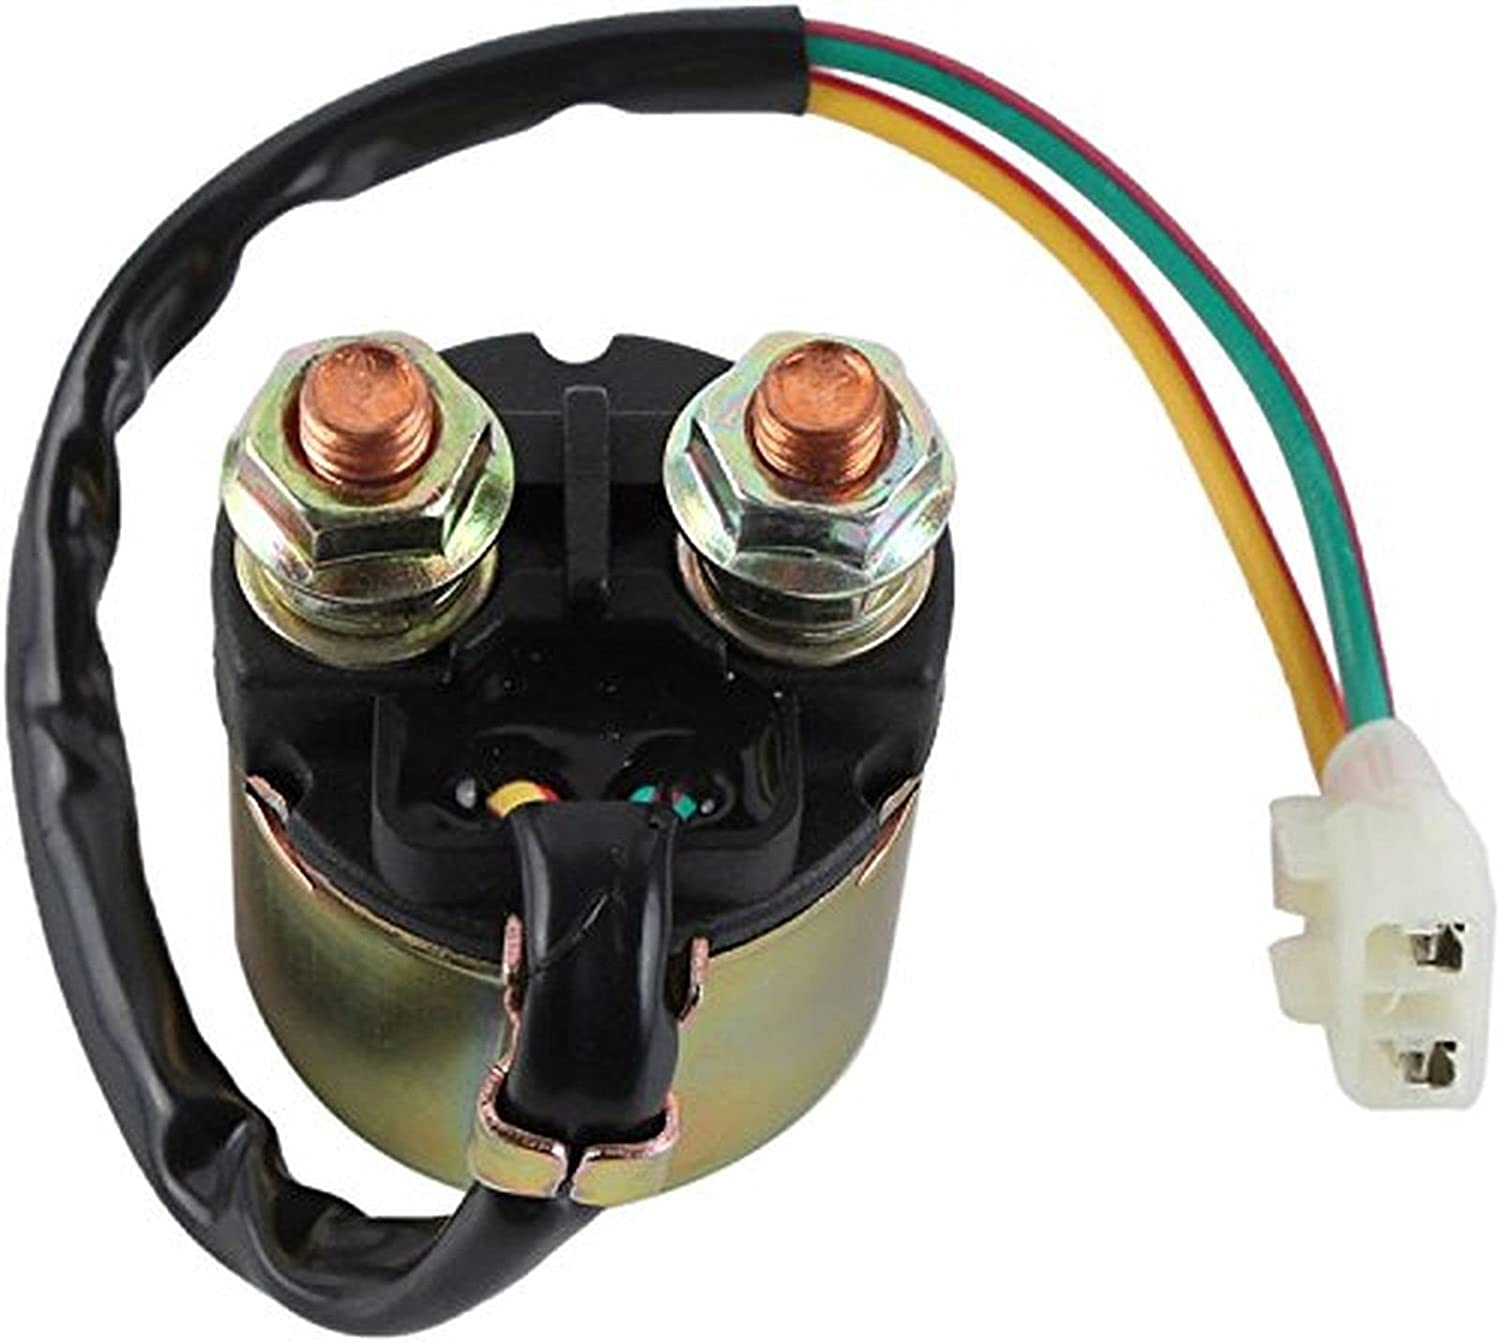 New 12 Volt Starter Solenoid Replacement For Honda TRX500FPA TRX500FPE TRX500FPM TRX500TM ATV